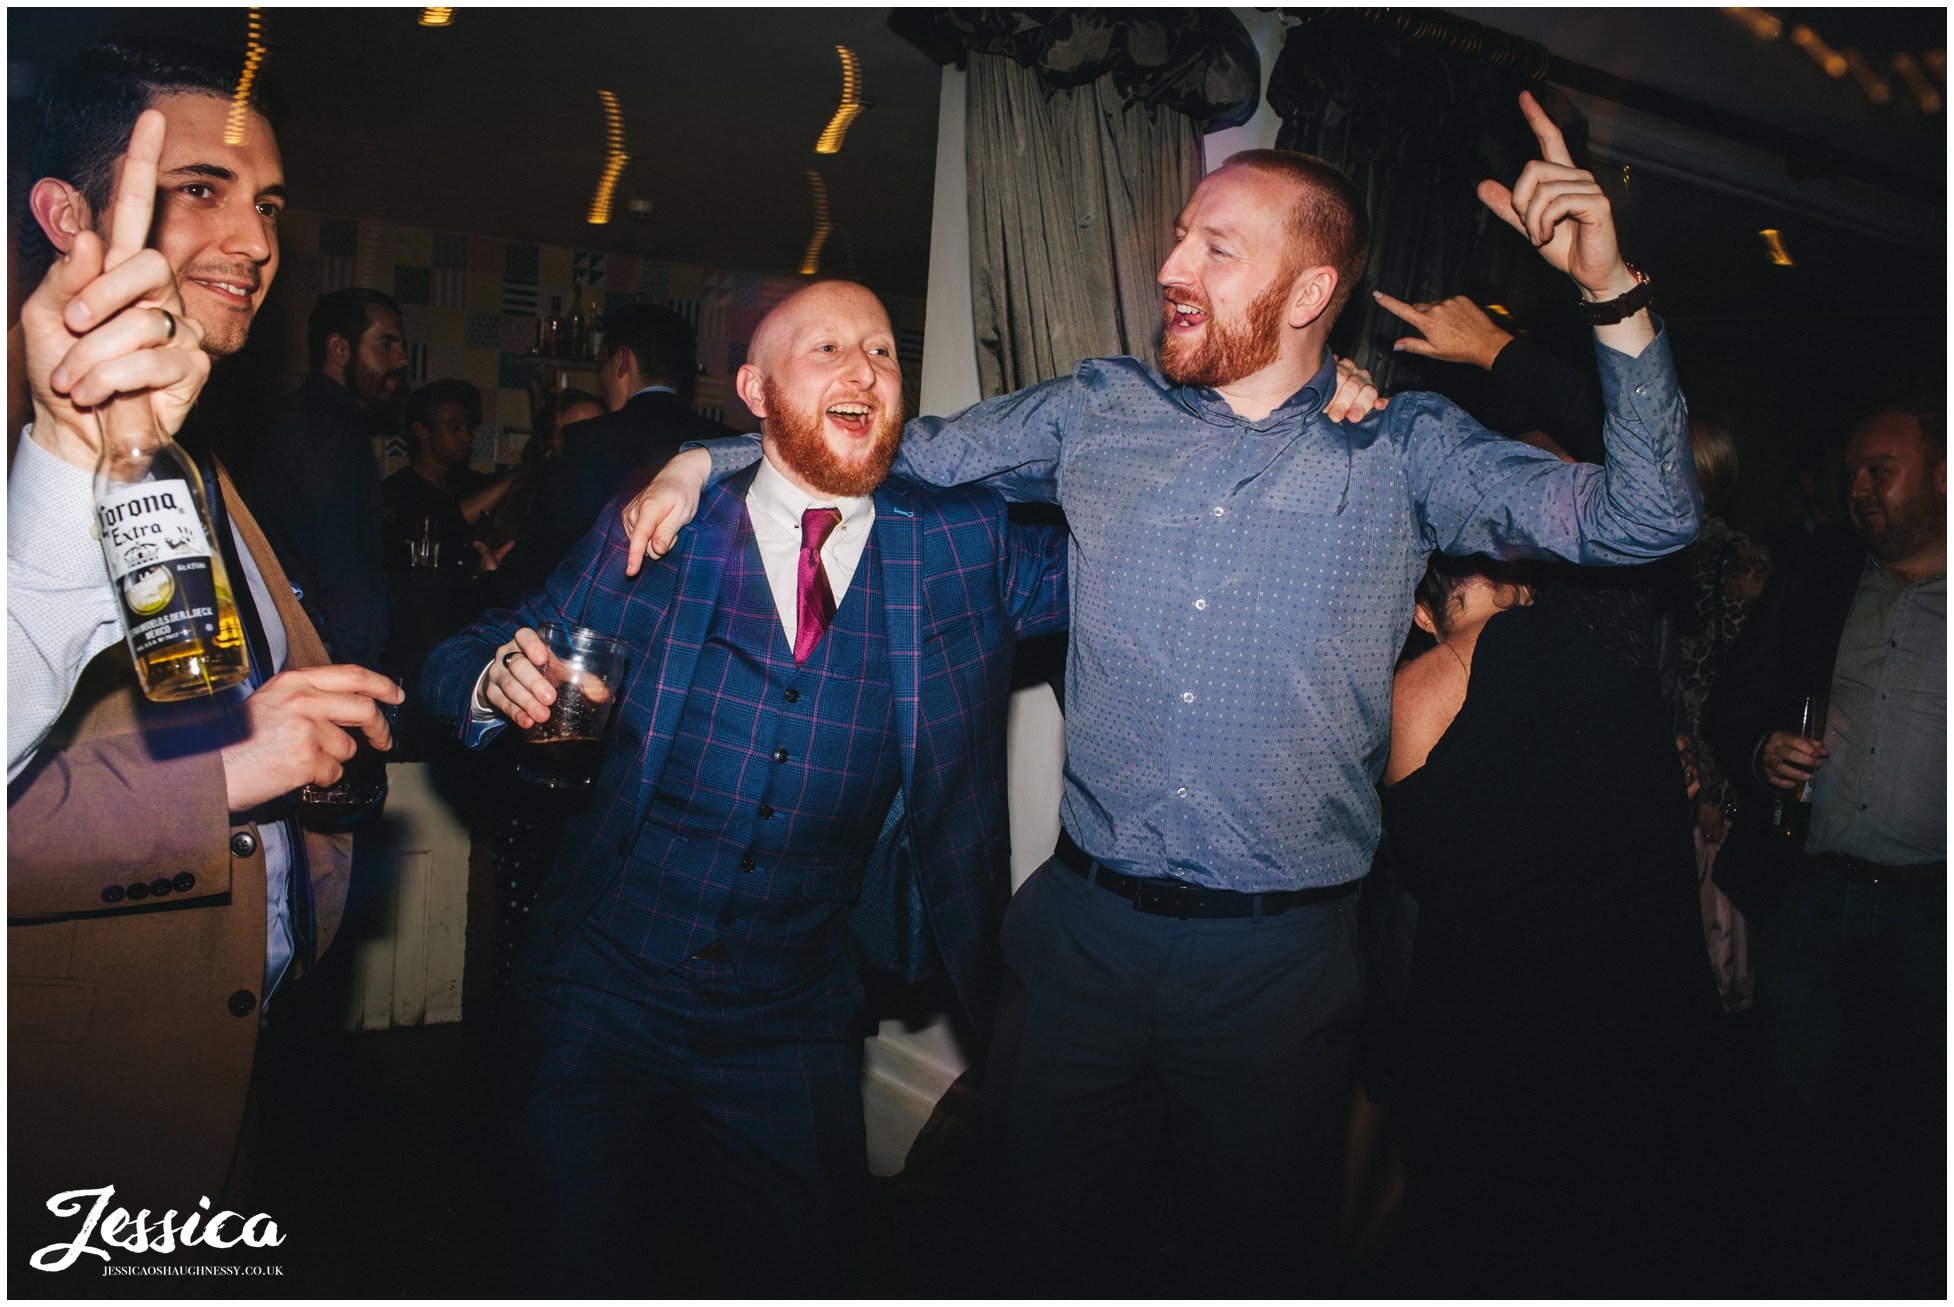 guests join newly wed's on the dancefloor after the first dance